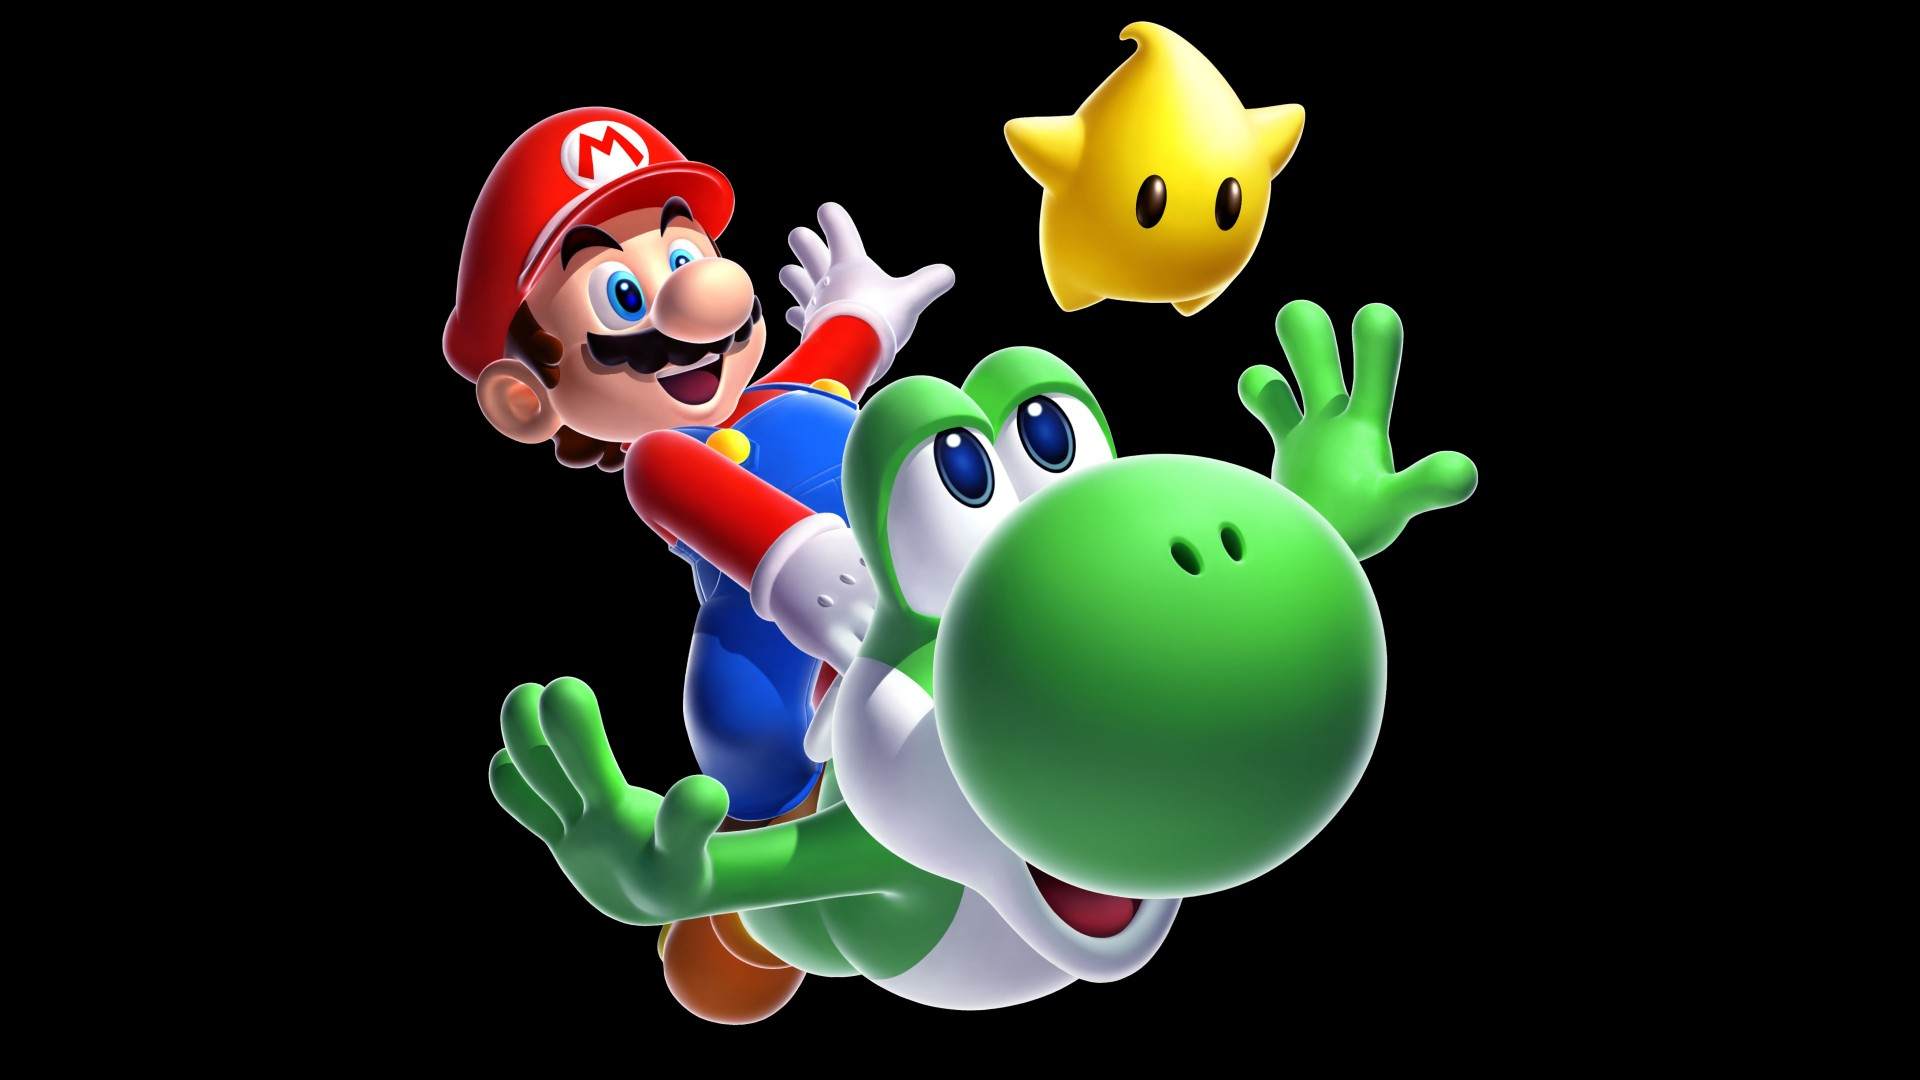 Super Mario Galaxy 2 Full HD Wallpaper and Background